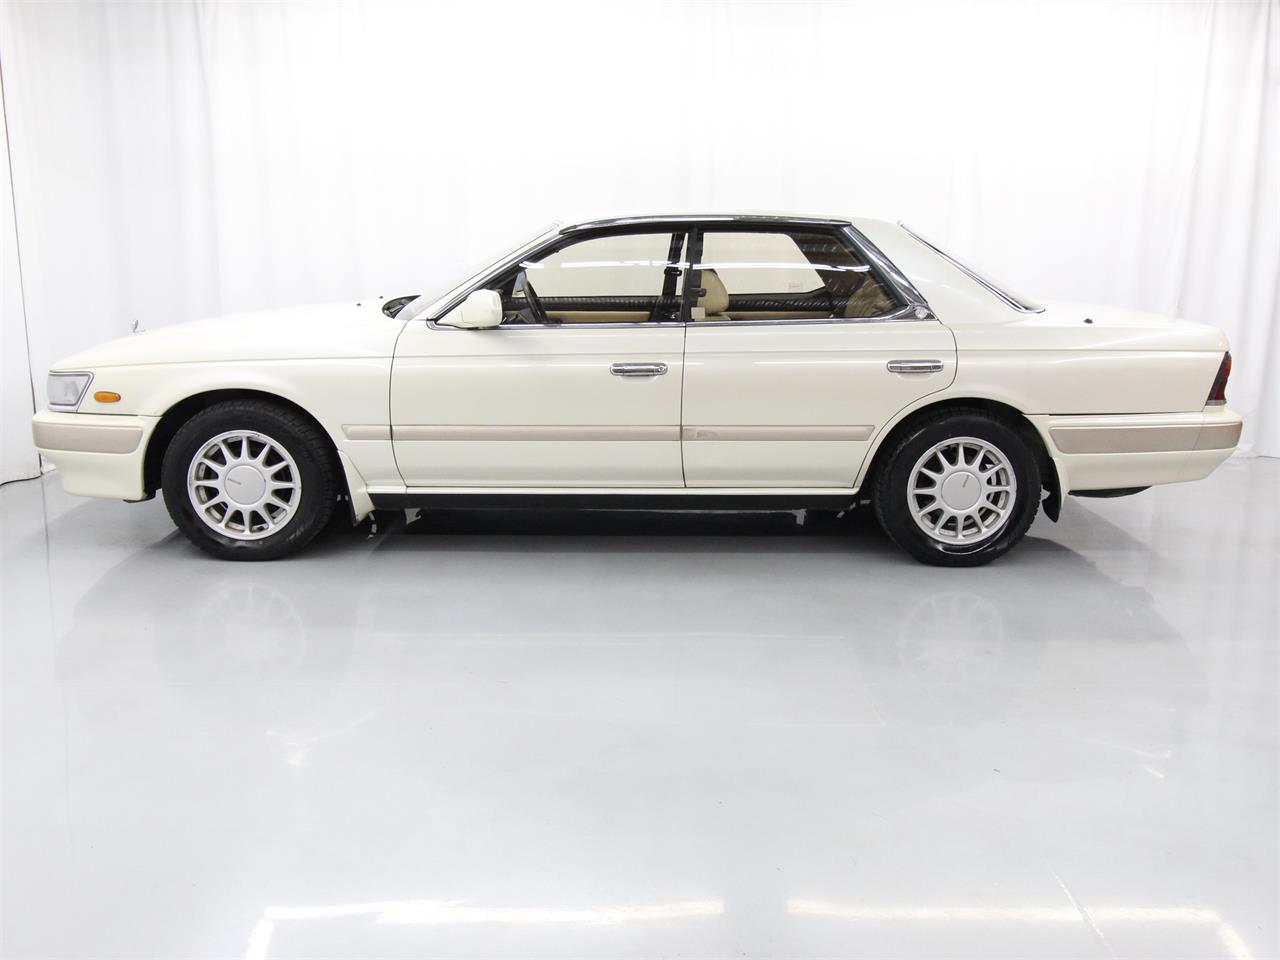 1990 nissan laurel for sale classiccars com cc 1362585 1990 nissan laurel for sale